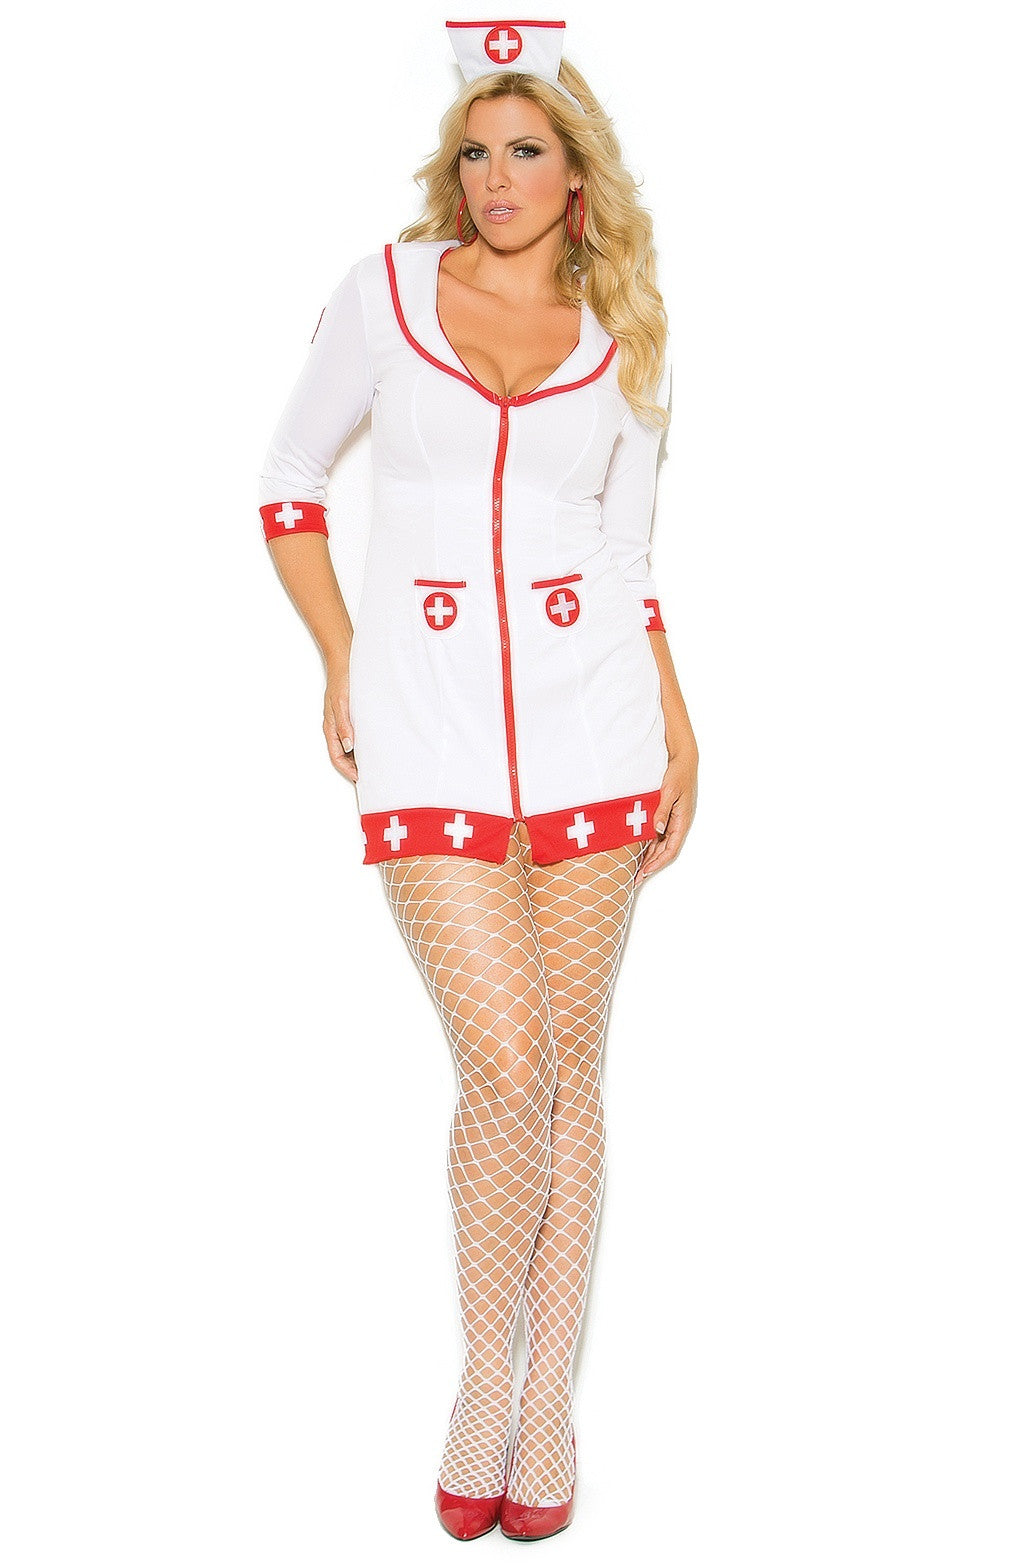 EM-99001 Cardiac Arrest Nurse Costume - Sexylingerieland